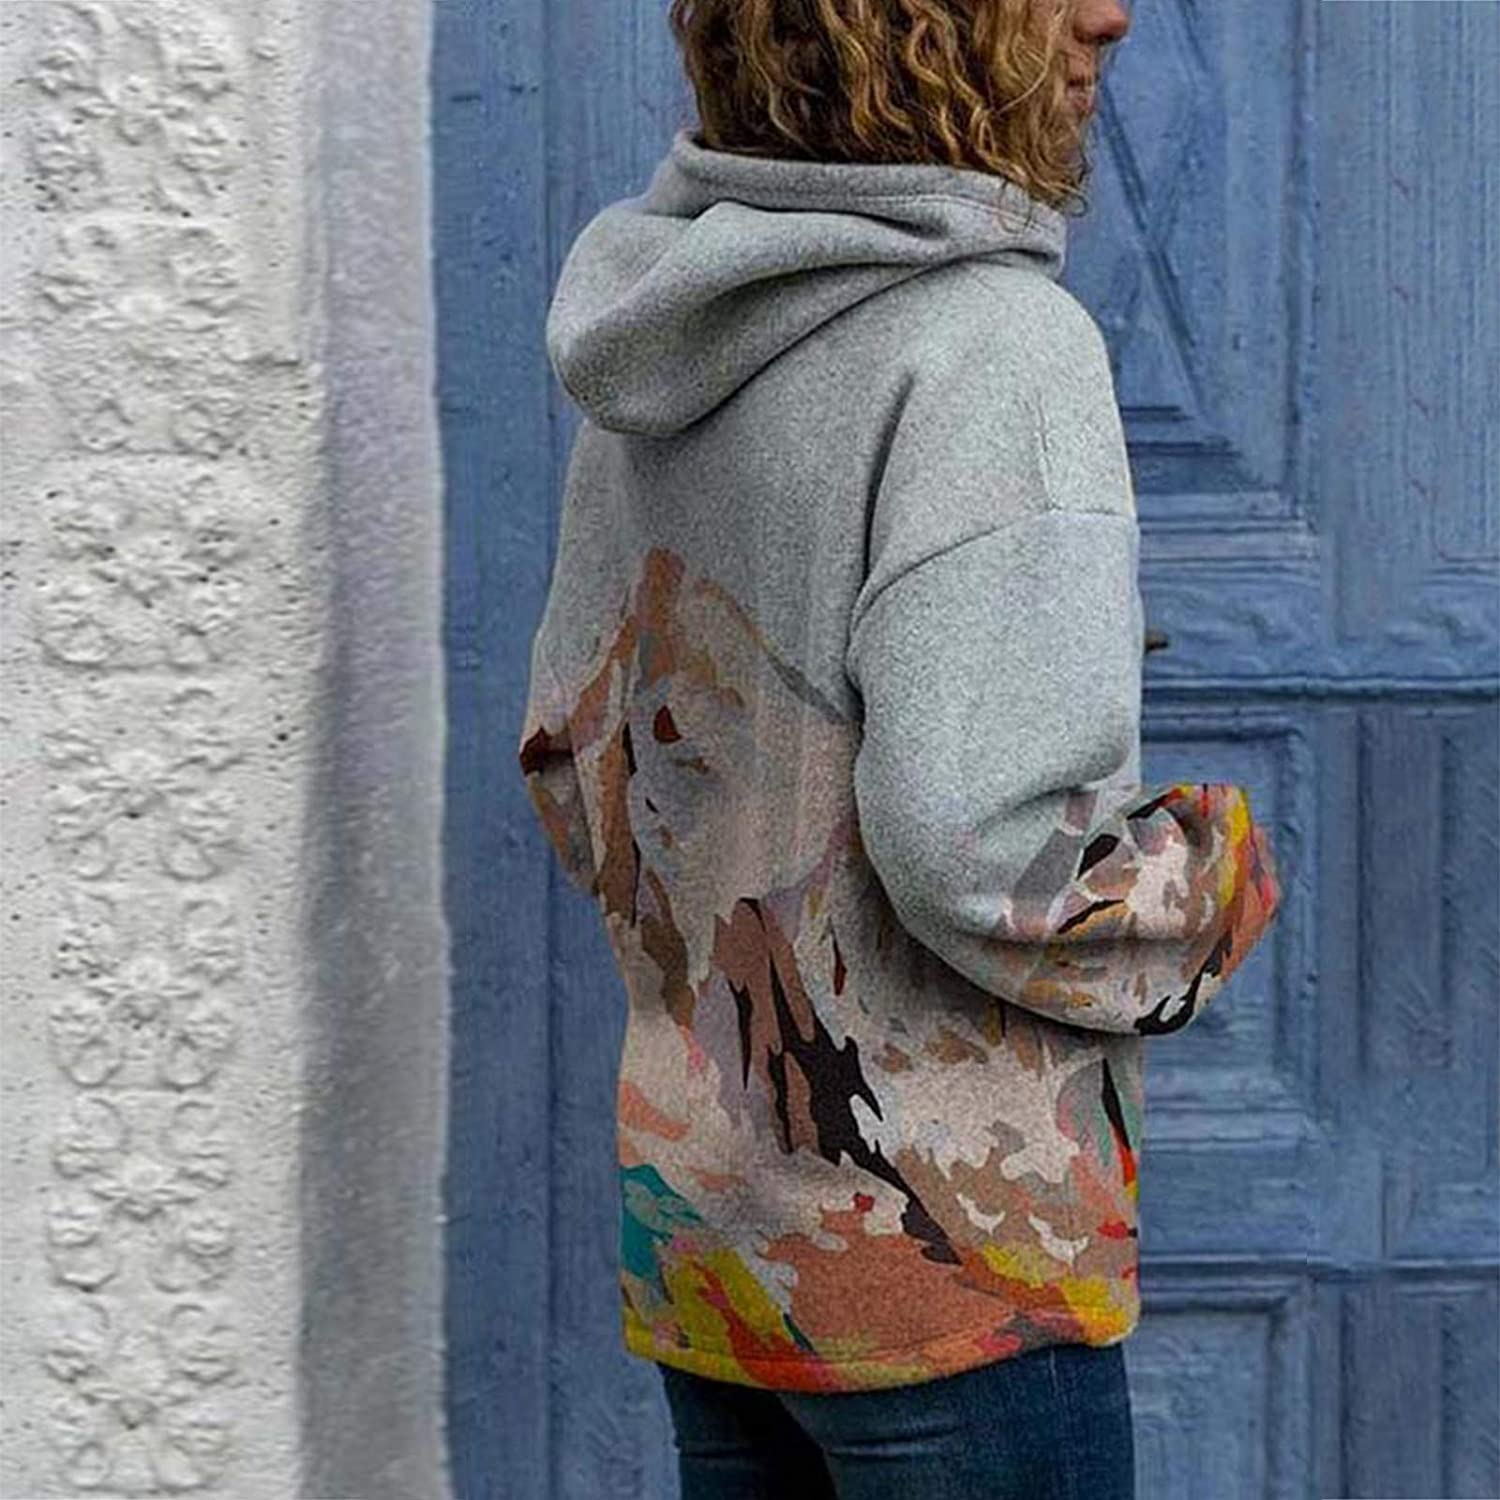 POTO Hoodie Sweatshirt for Women 3D Graphic Printed Hooded Sweaters Landscape Pattern Lightweight Pullover Tops